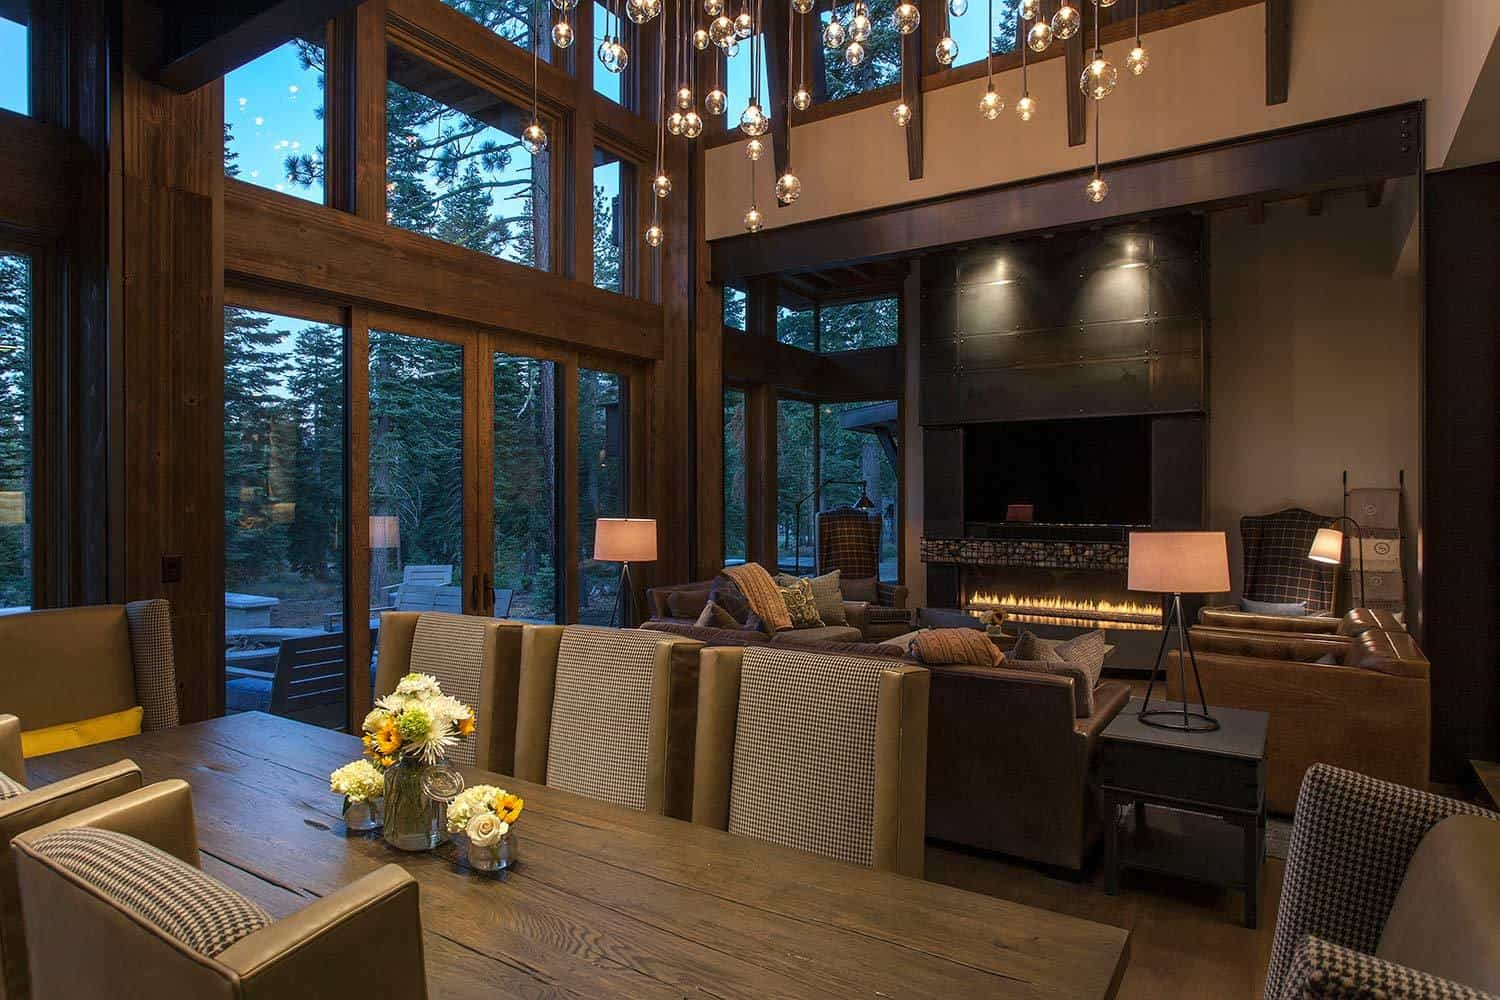 Lake tahoe getaway features contemporary barn aesthetic Design interior of house